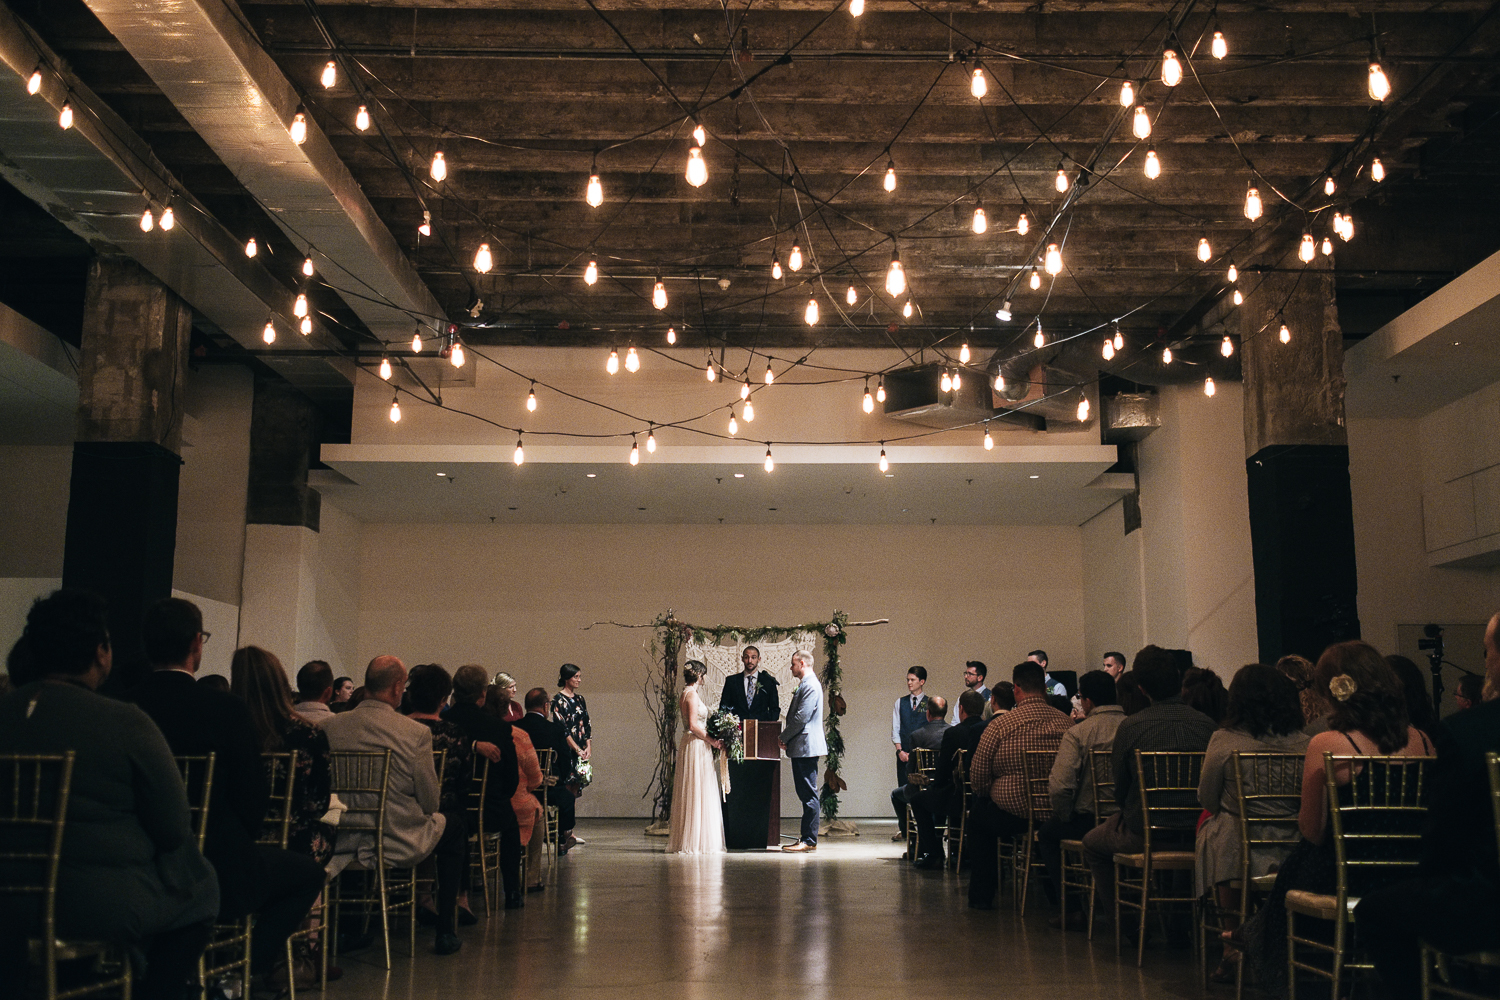 The best Toledo wedding ceremony venues include The Registry Bistro in downtown Toledo